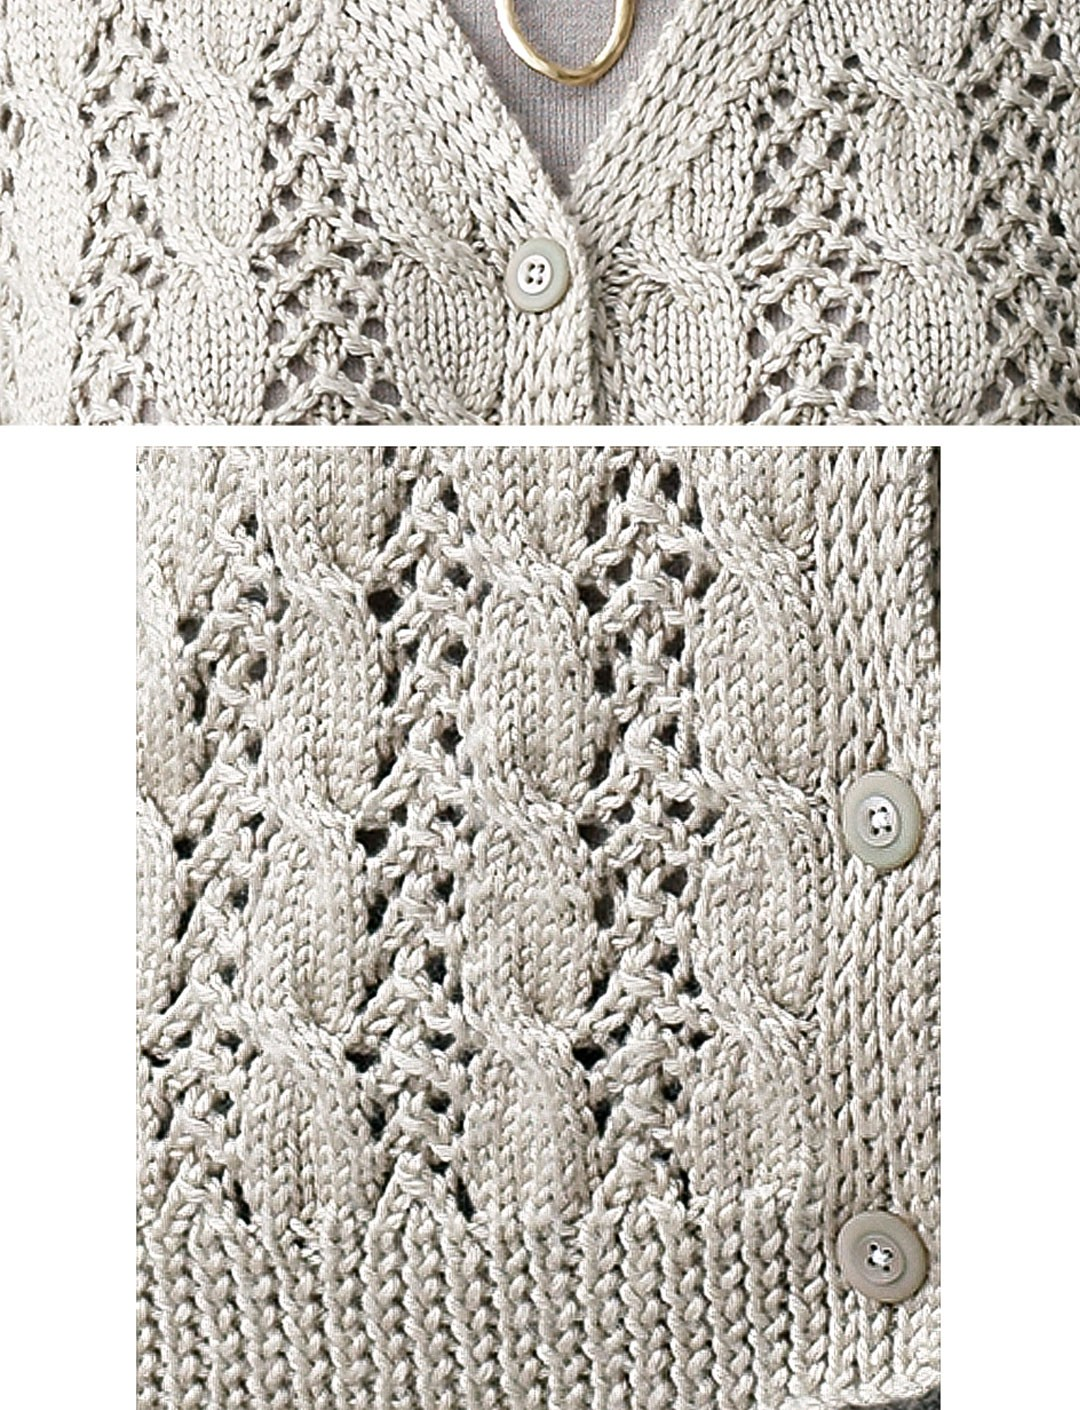 Lace Cardigan Knitting Pattern : Patons Lace and Cable Cardigan, Knit Pattern Yarnspirations